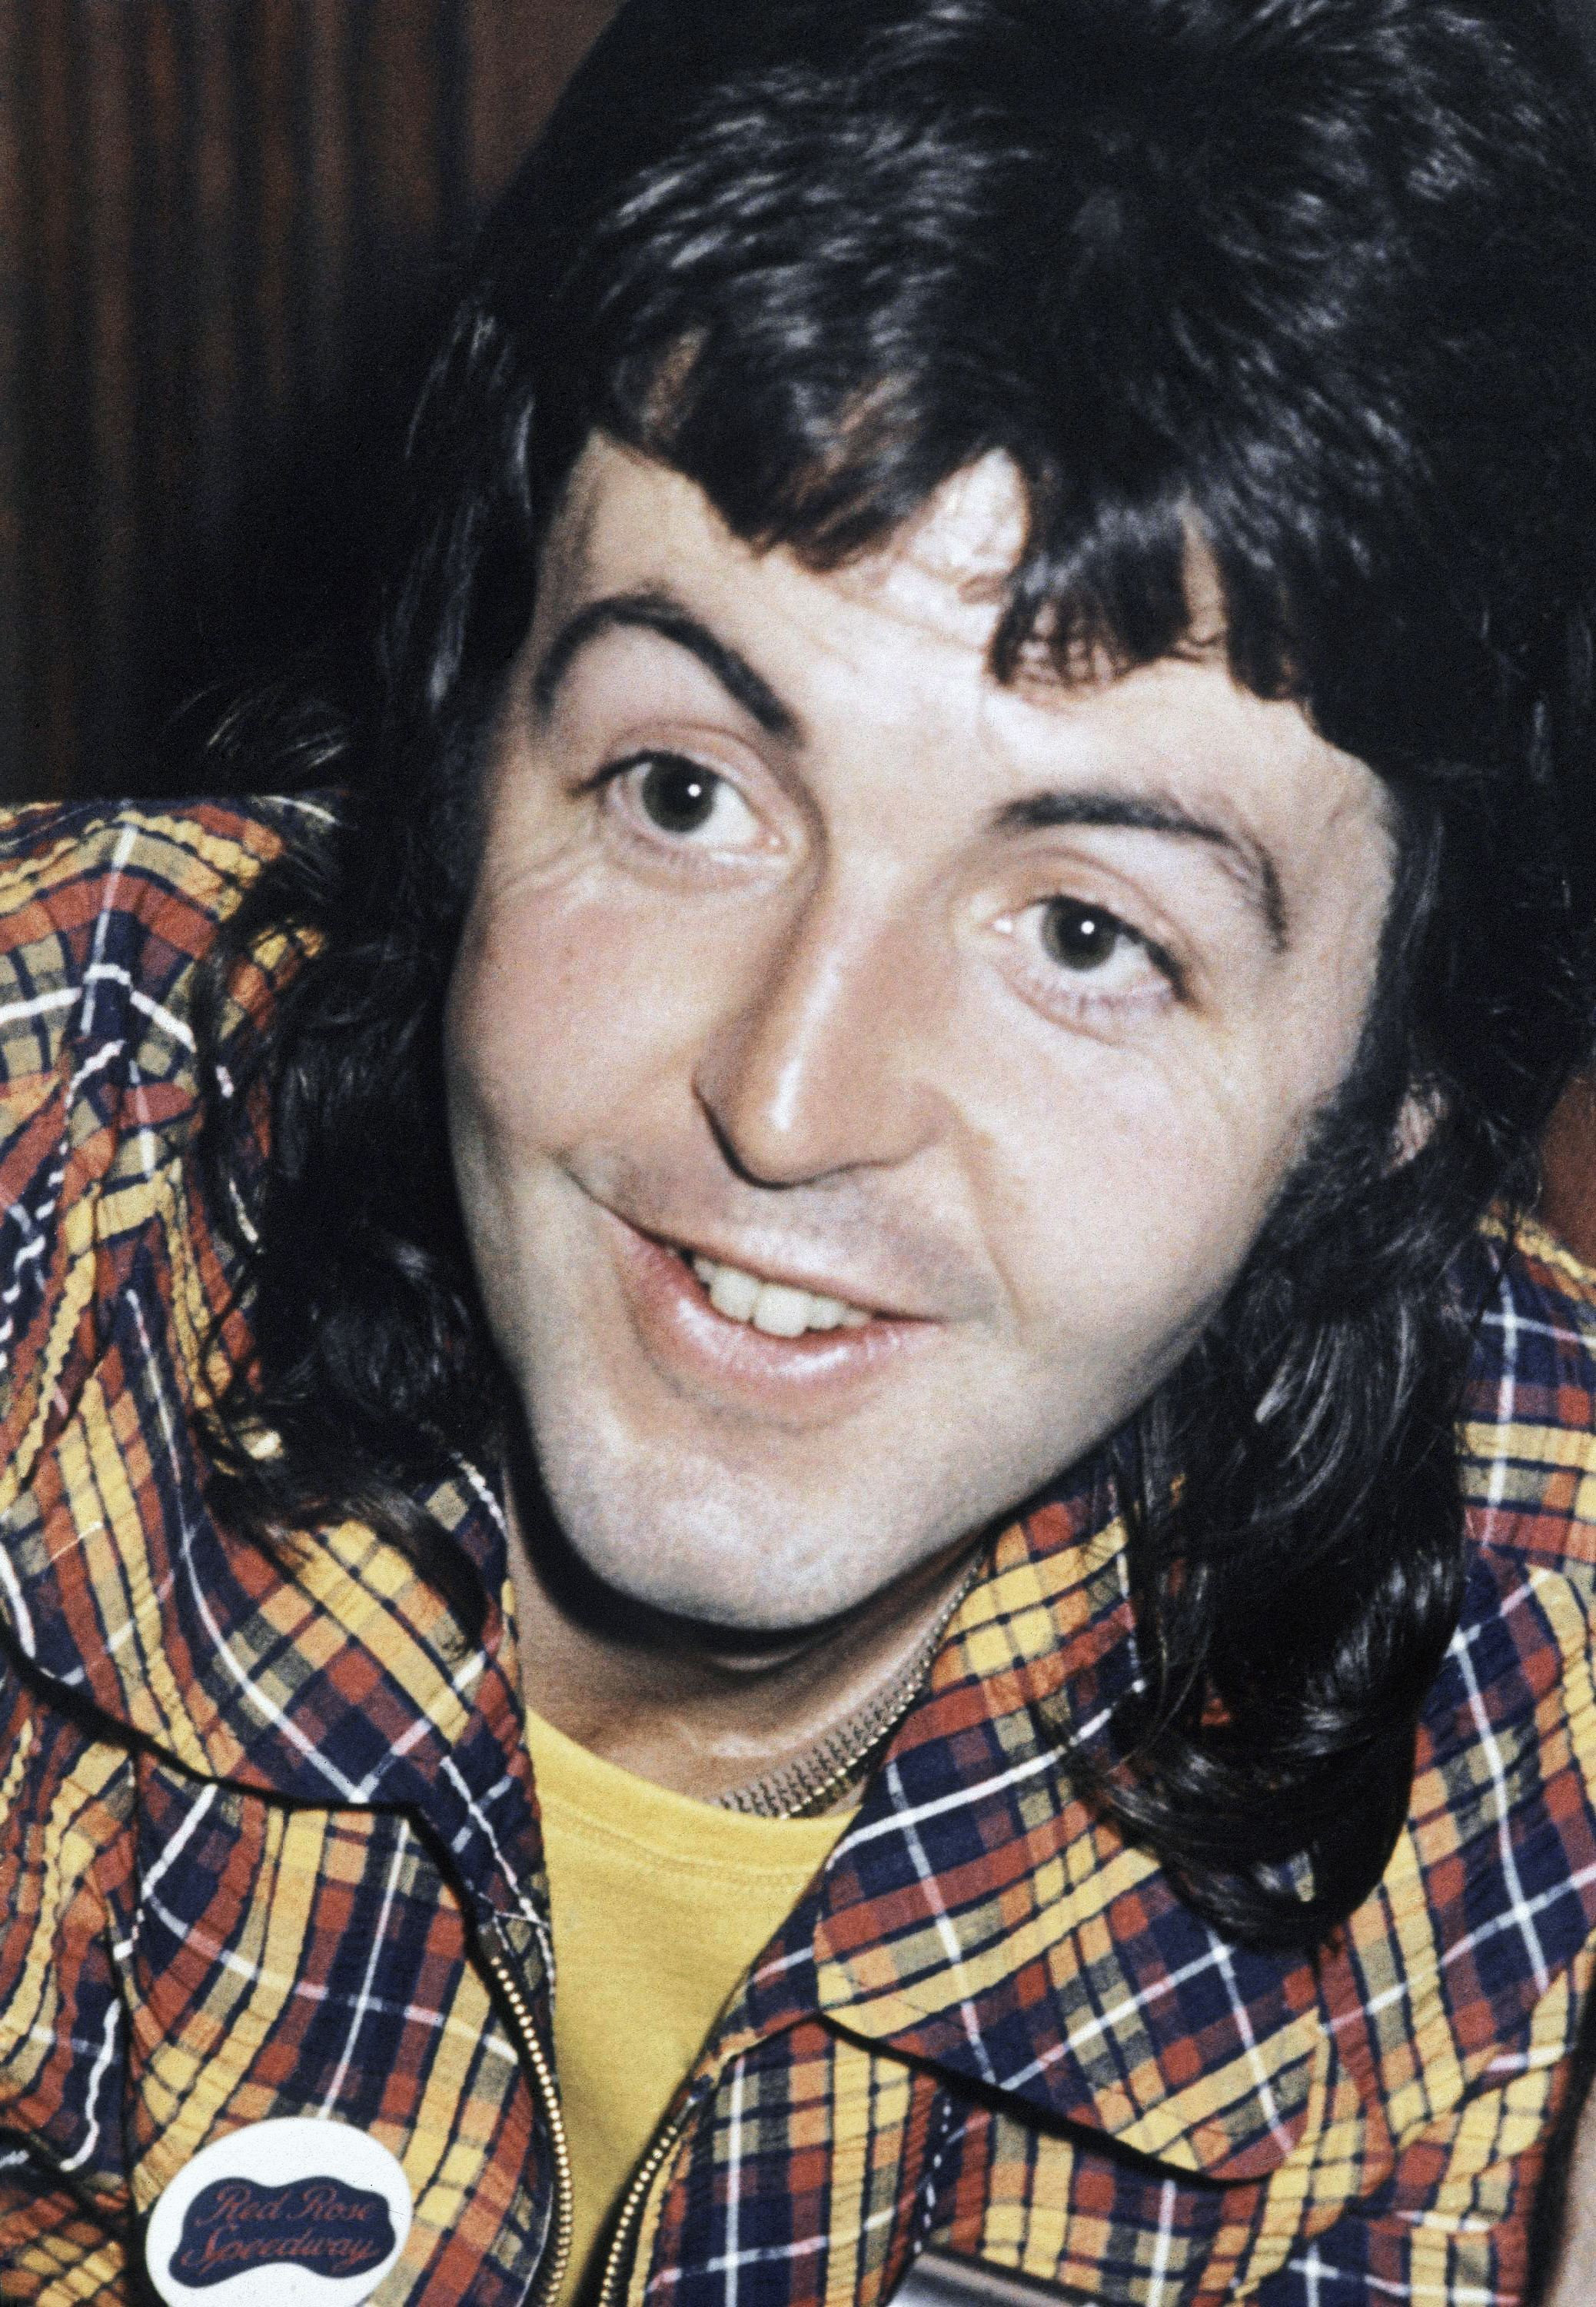 Paul Mccartney 1973 2076x3000 Pixels